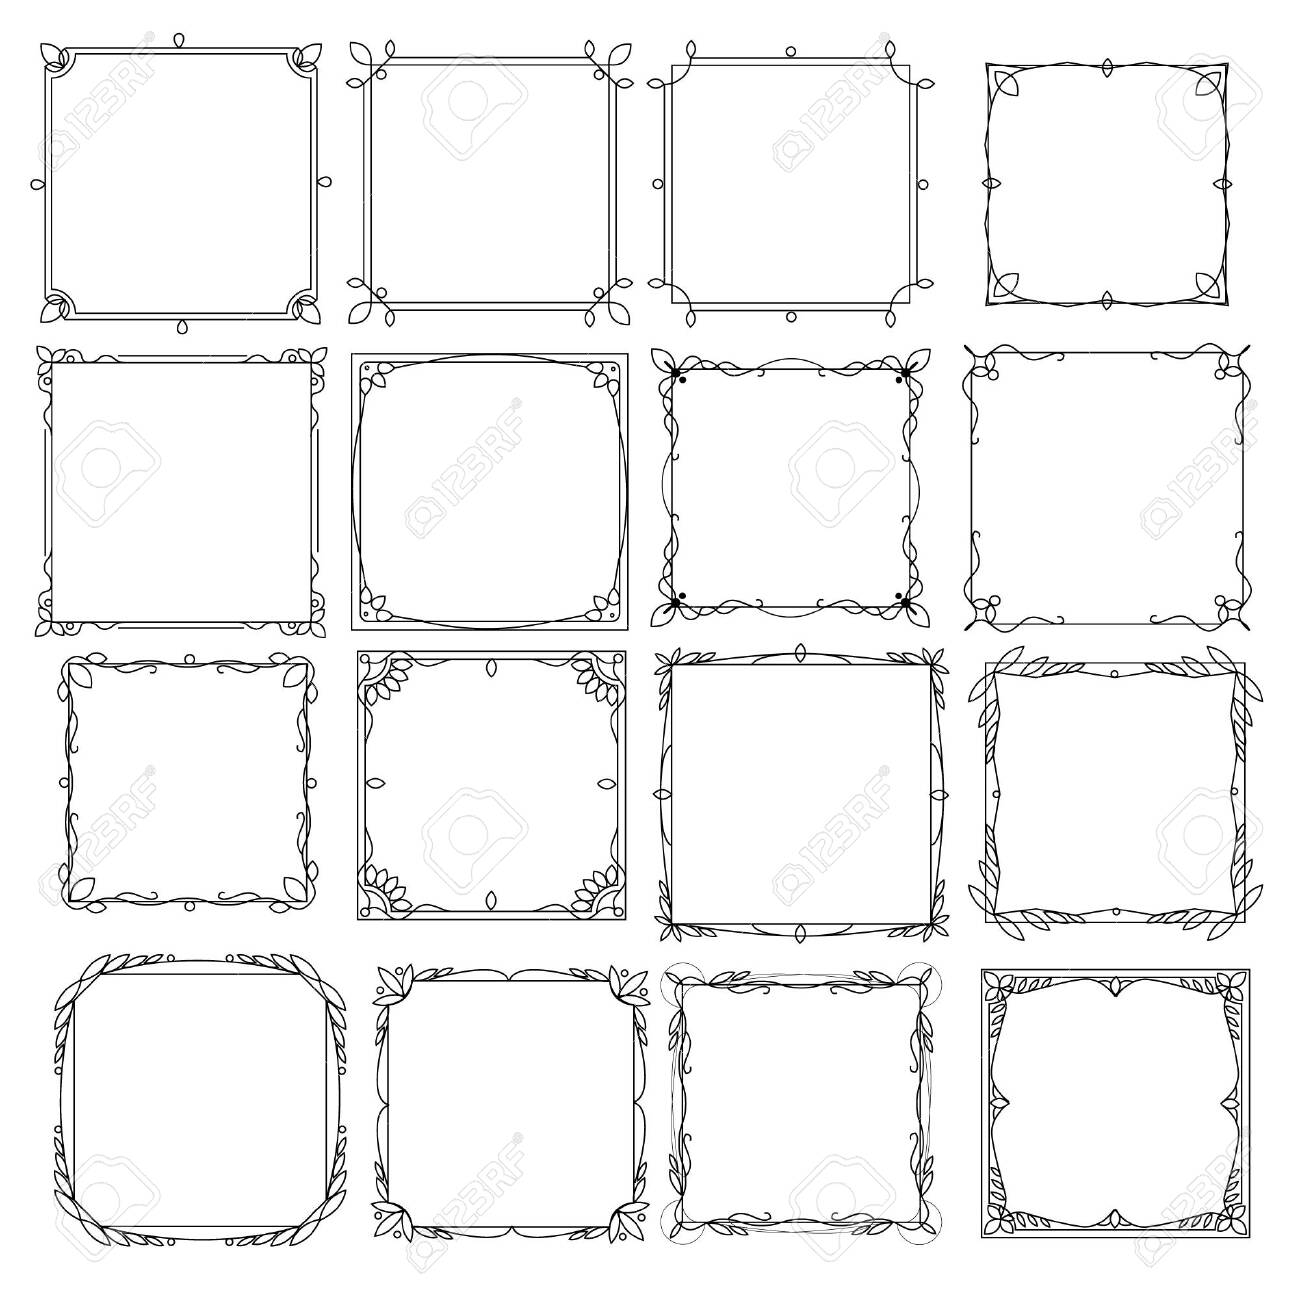 Set of decorative frames with a pattern isolated on white background. Retro ornamental frame, vintage rectangle ornaments and ornate border. - 140808515